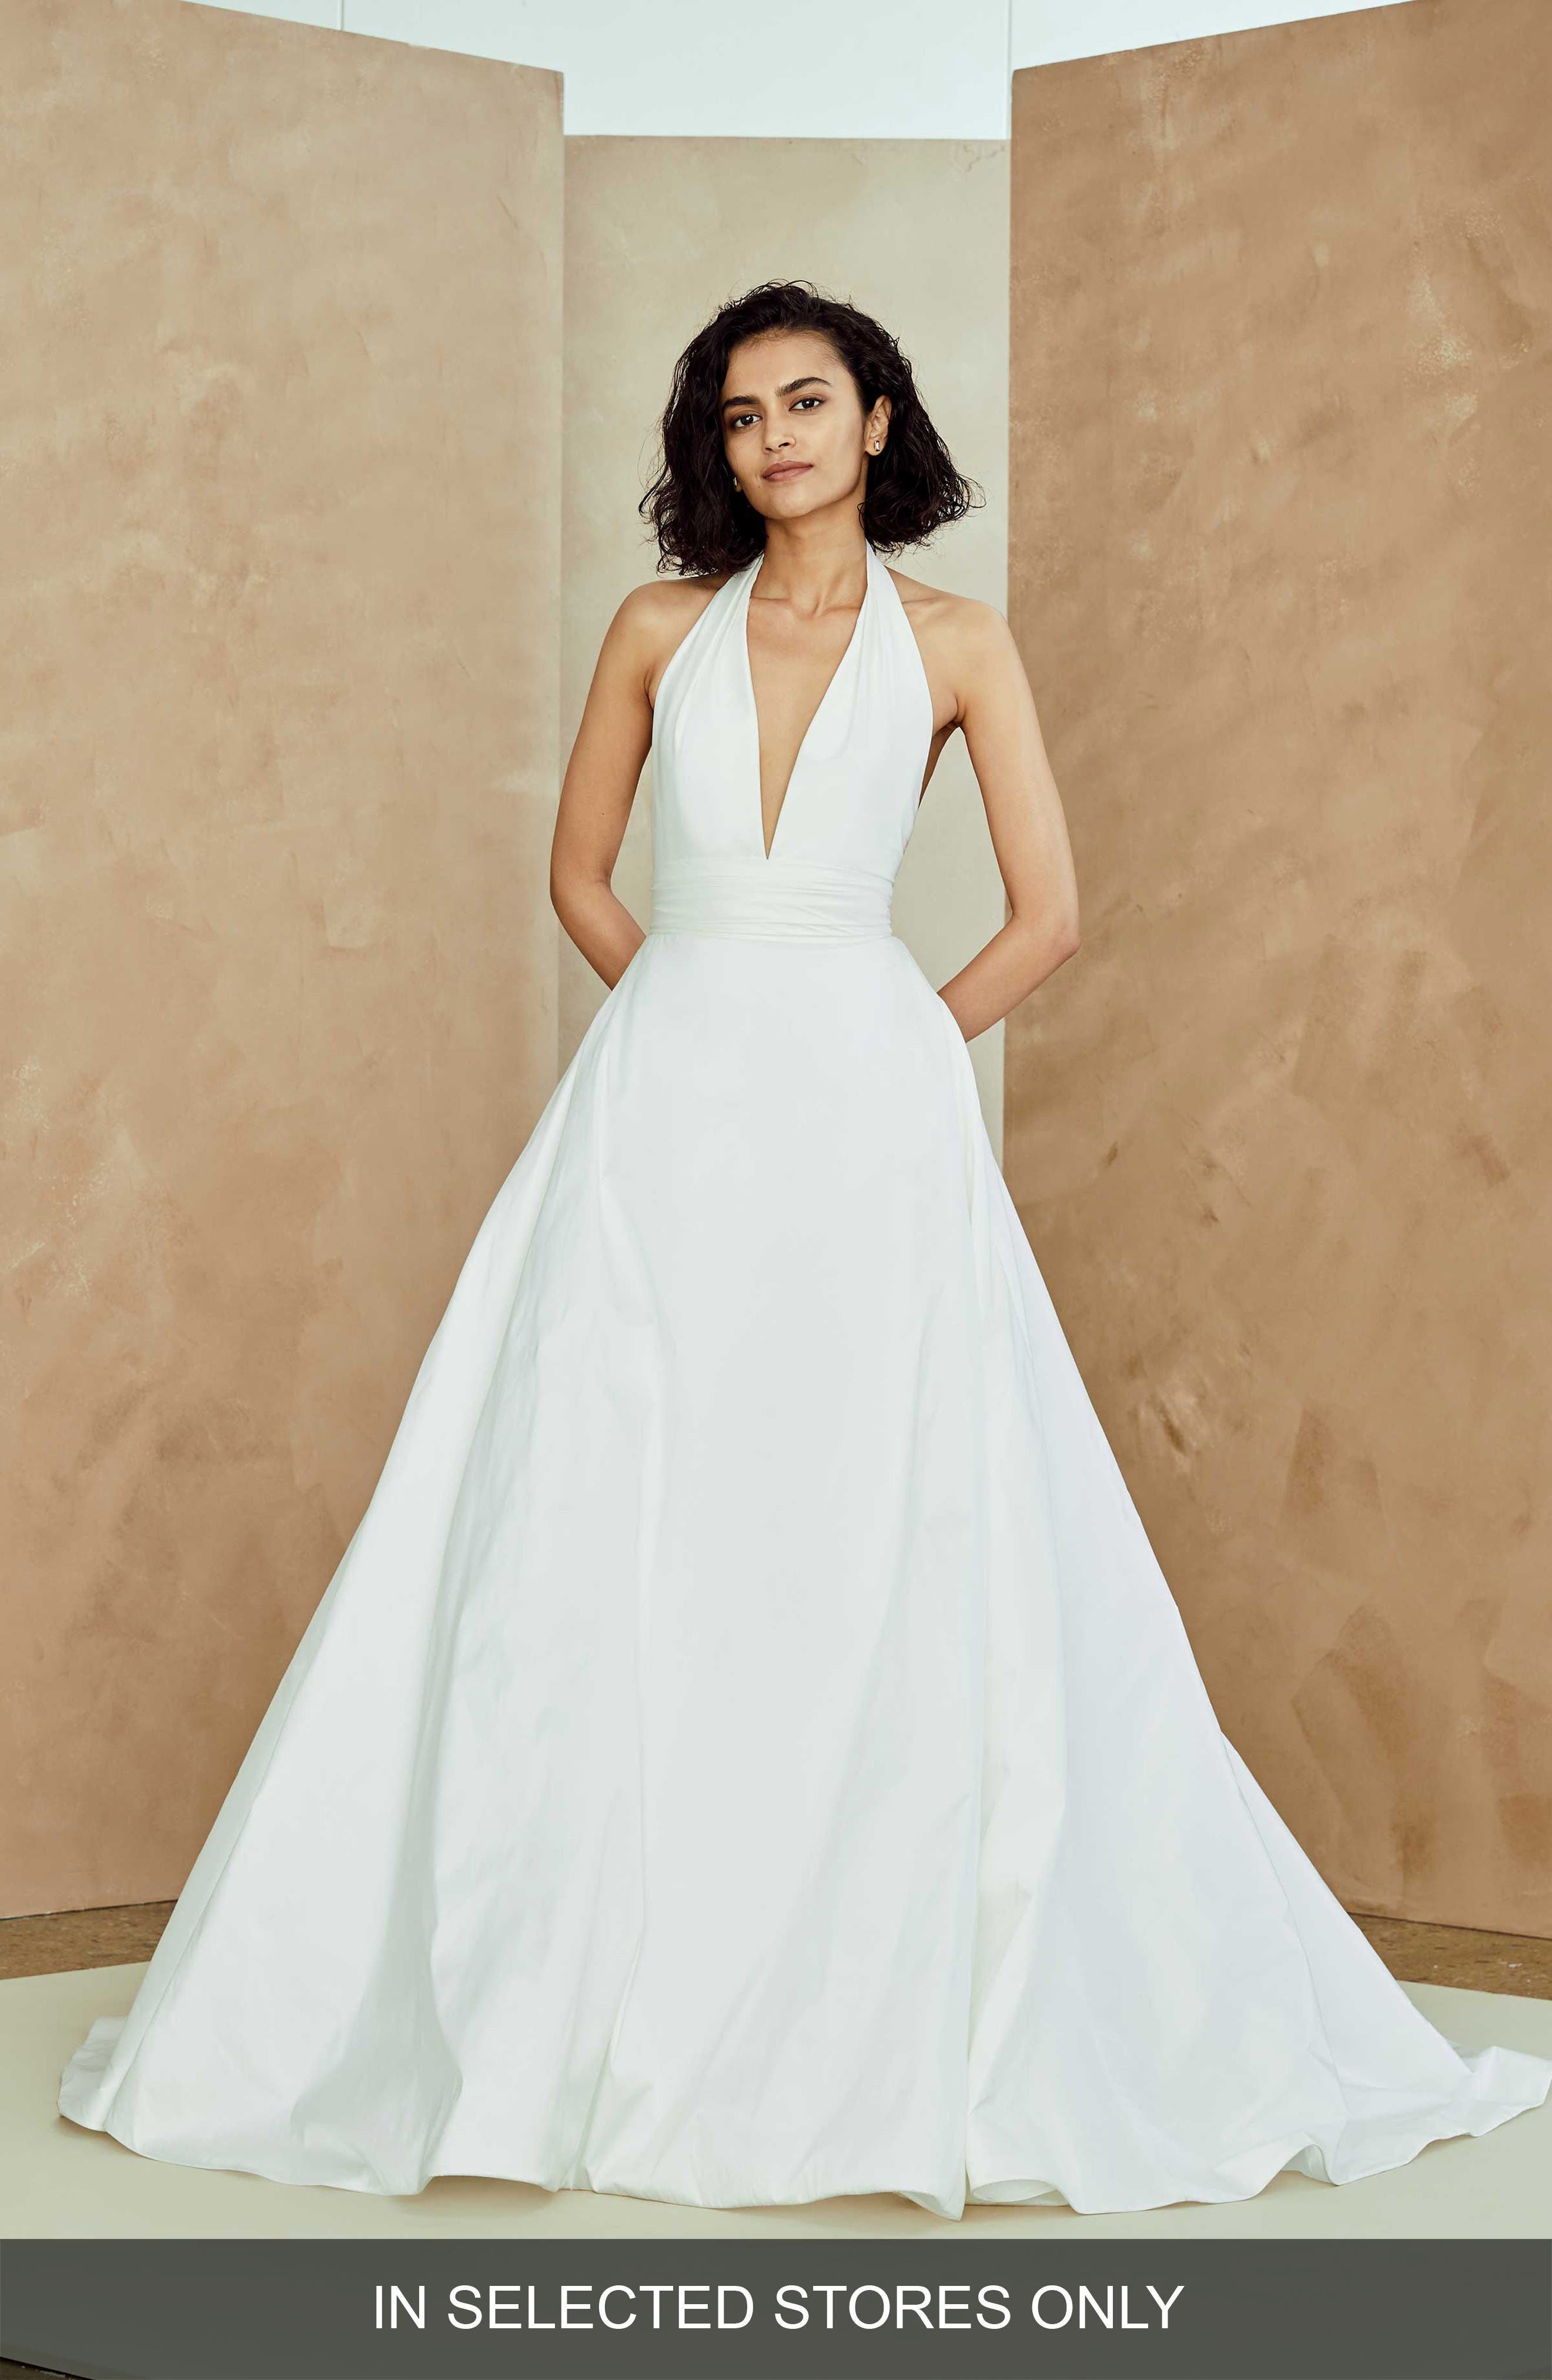 Nouvelle Amsale Melia Halter Neck Taffeta Ballgown, Size IN STORE ONLY - Ivory